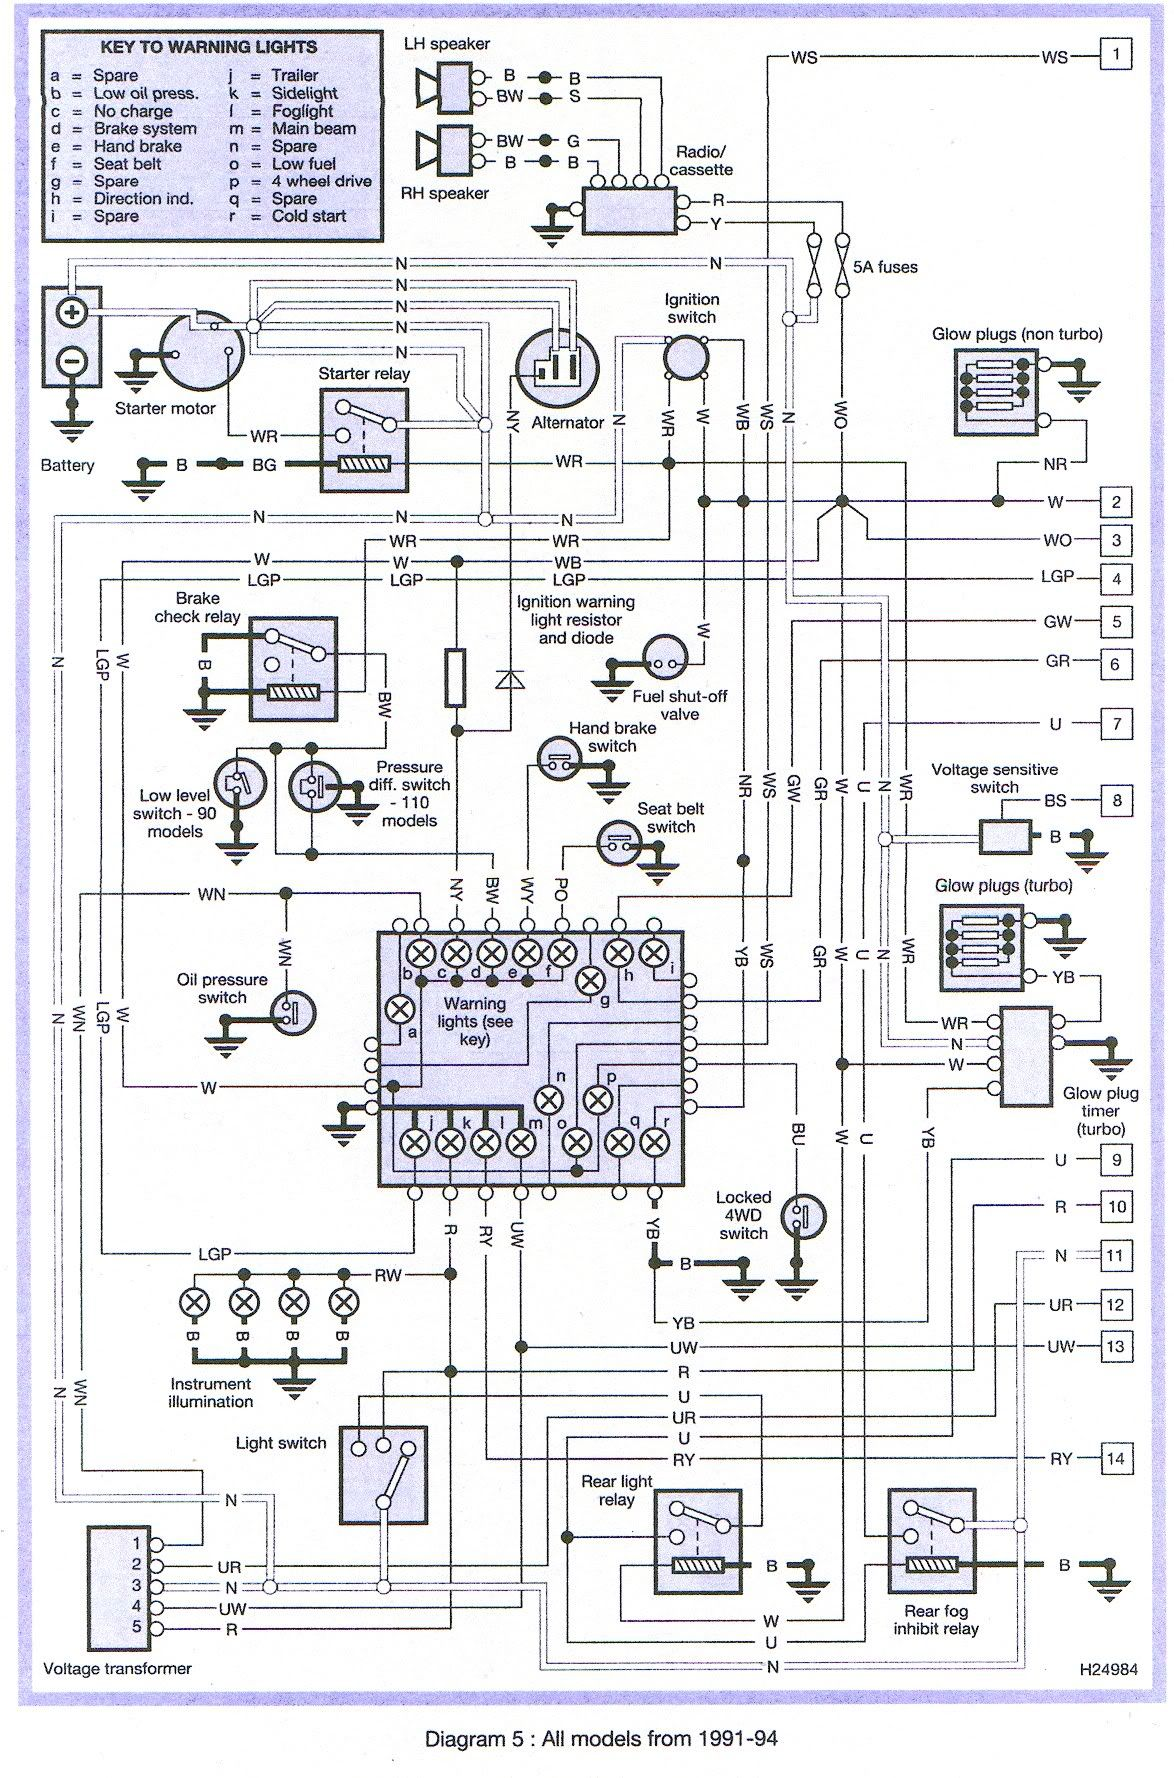 07629544bfff38ad2881b2c21312c6e6 land rover discovery wiring diagram manual repair with engine Land Rover Discovery 1 at gsmx.co